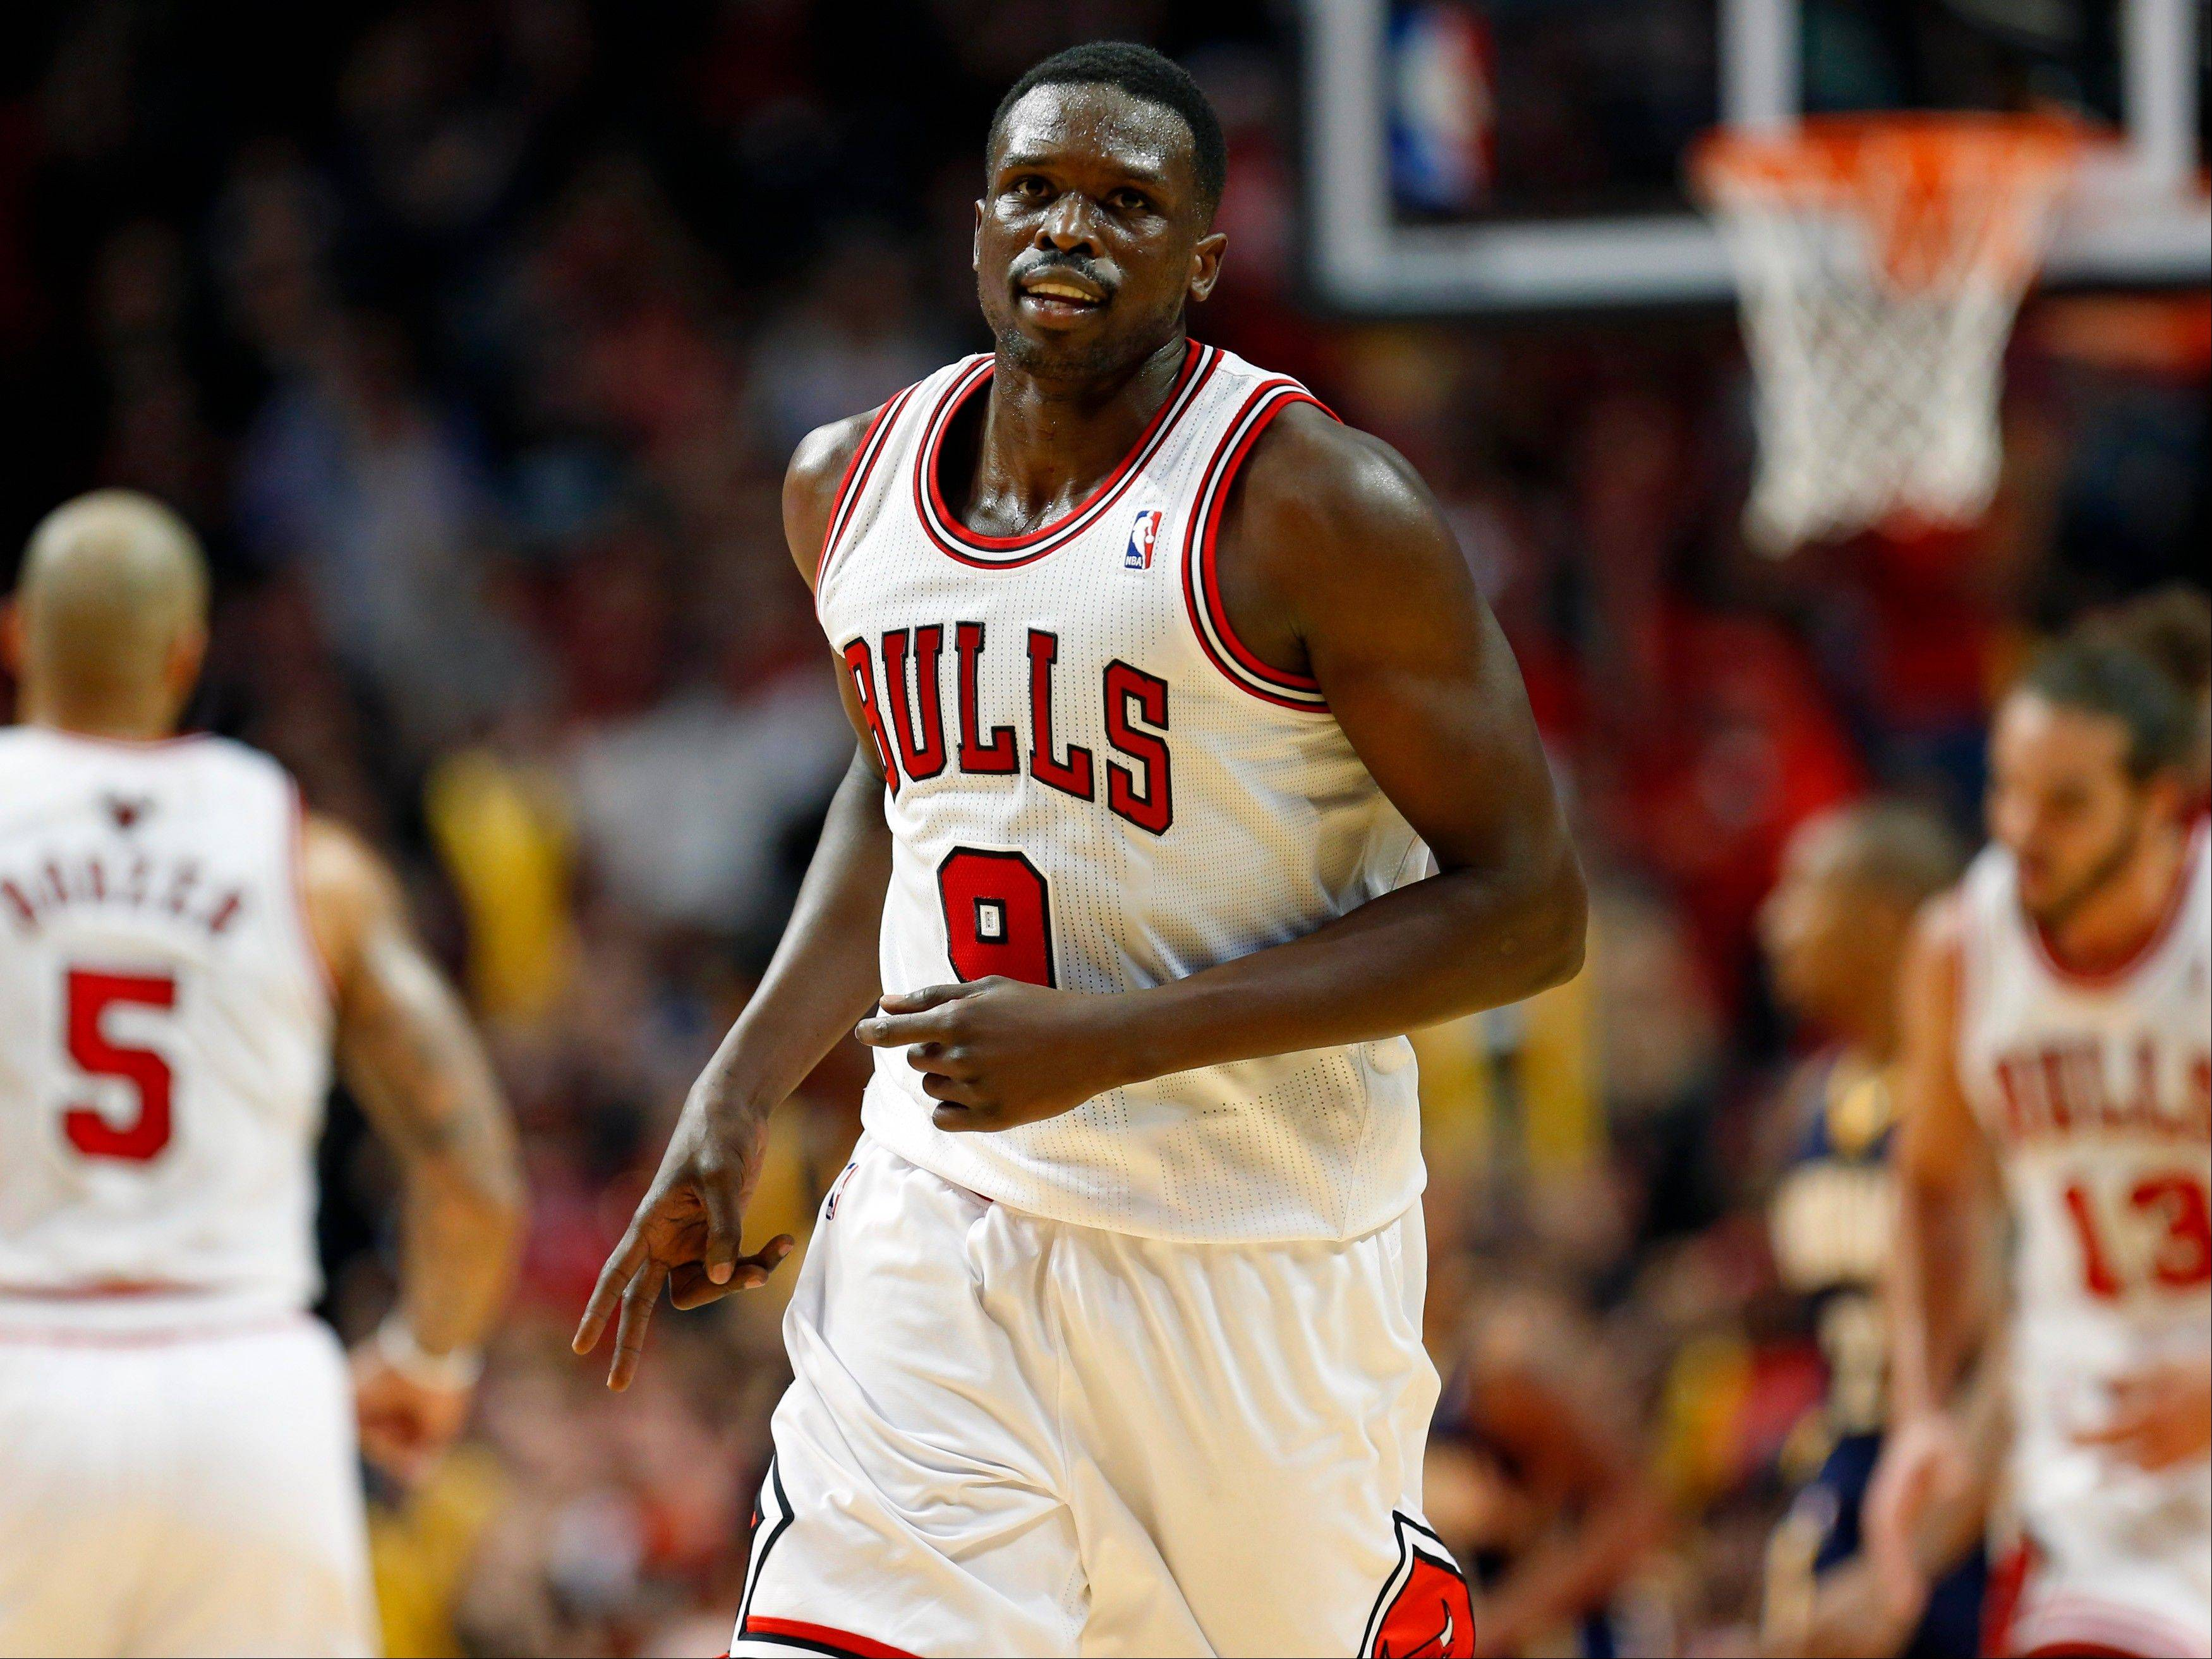 Trading forward Luol Deng and getting a good player in return could be difficult with Deng's expiring contract. Contending teams may not have the right fit in return, and other teams may be worried about not being able to re-sign him.